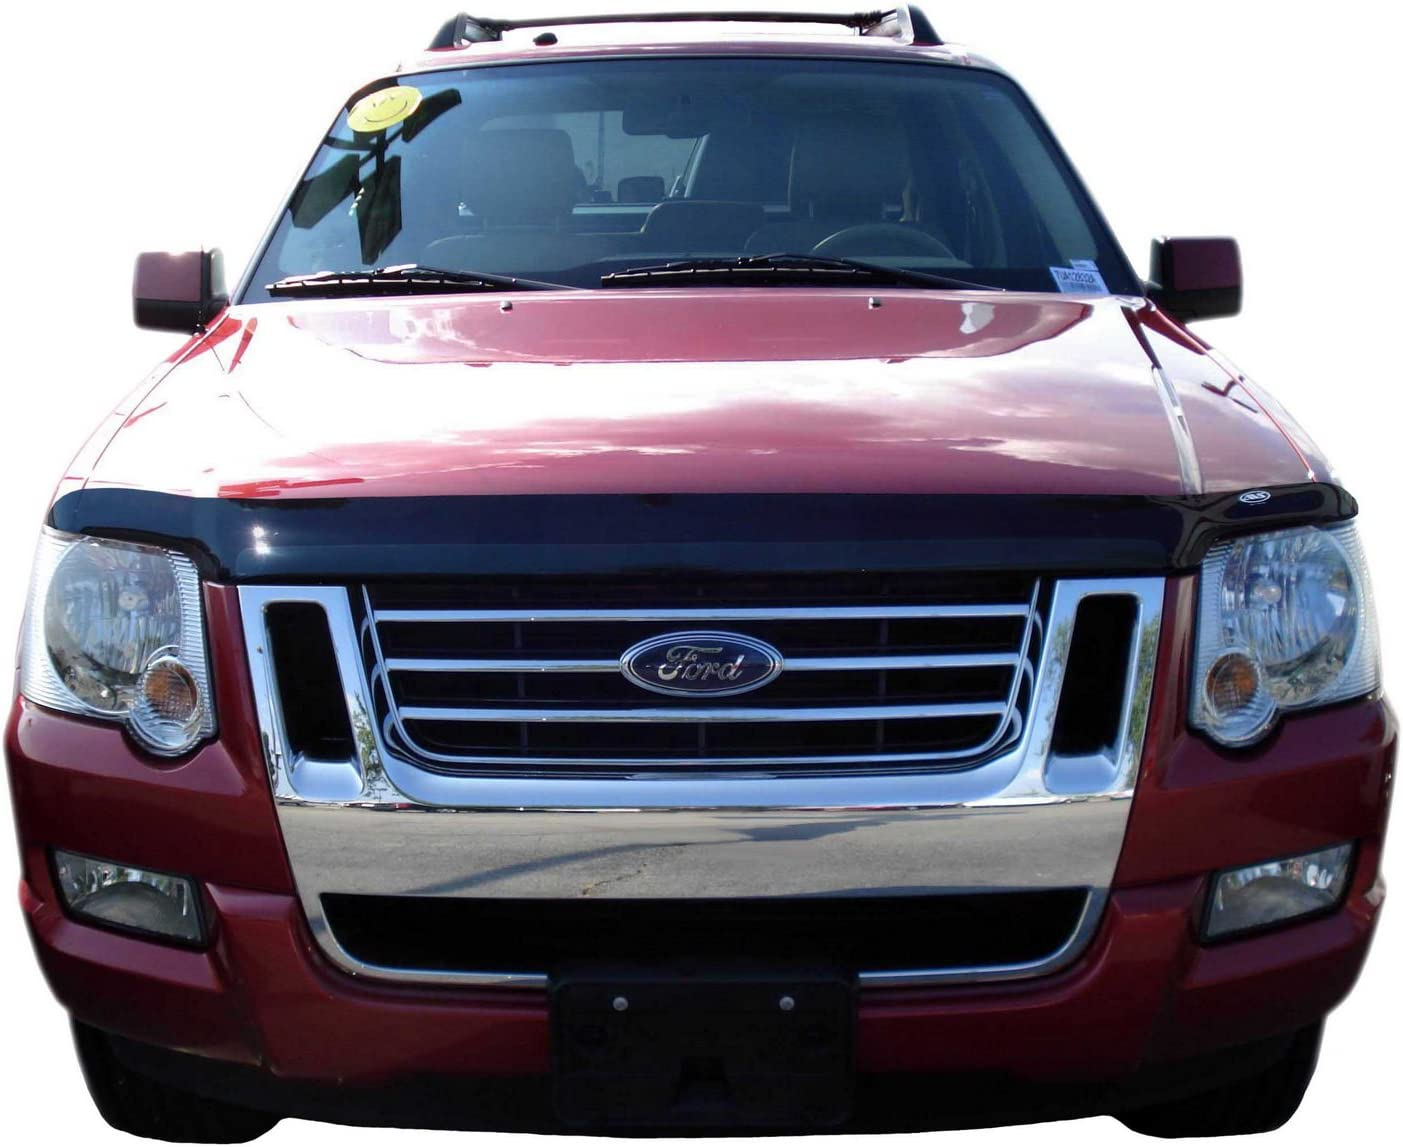 Auto Ventshade 23348 Bugflector Dark Smoke Hood Shield for 2006-2010 Ford Explorer 2007-2010 Sport Trac